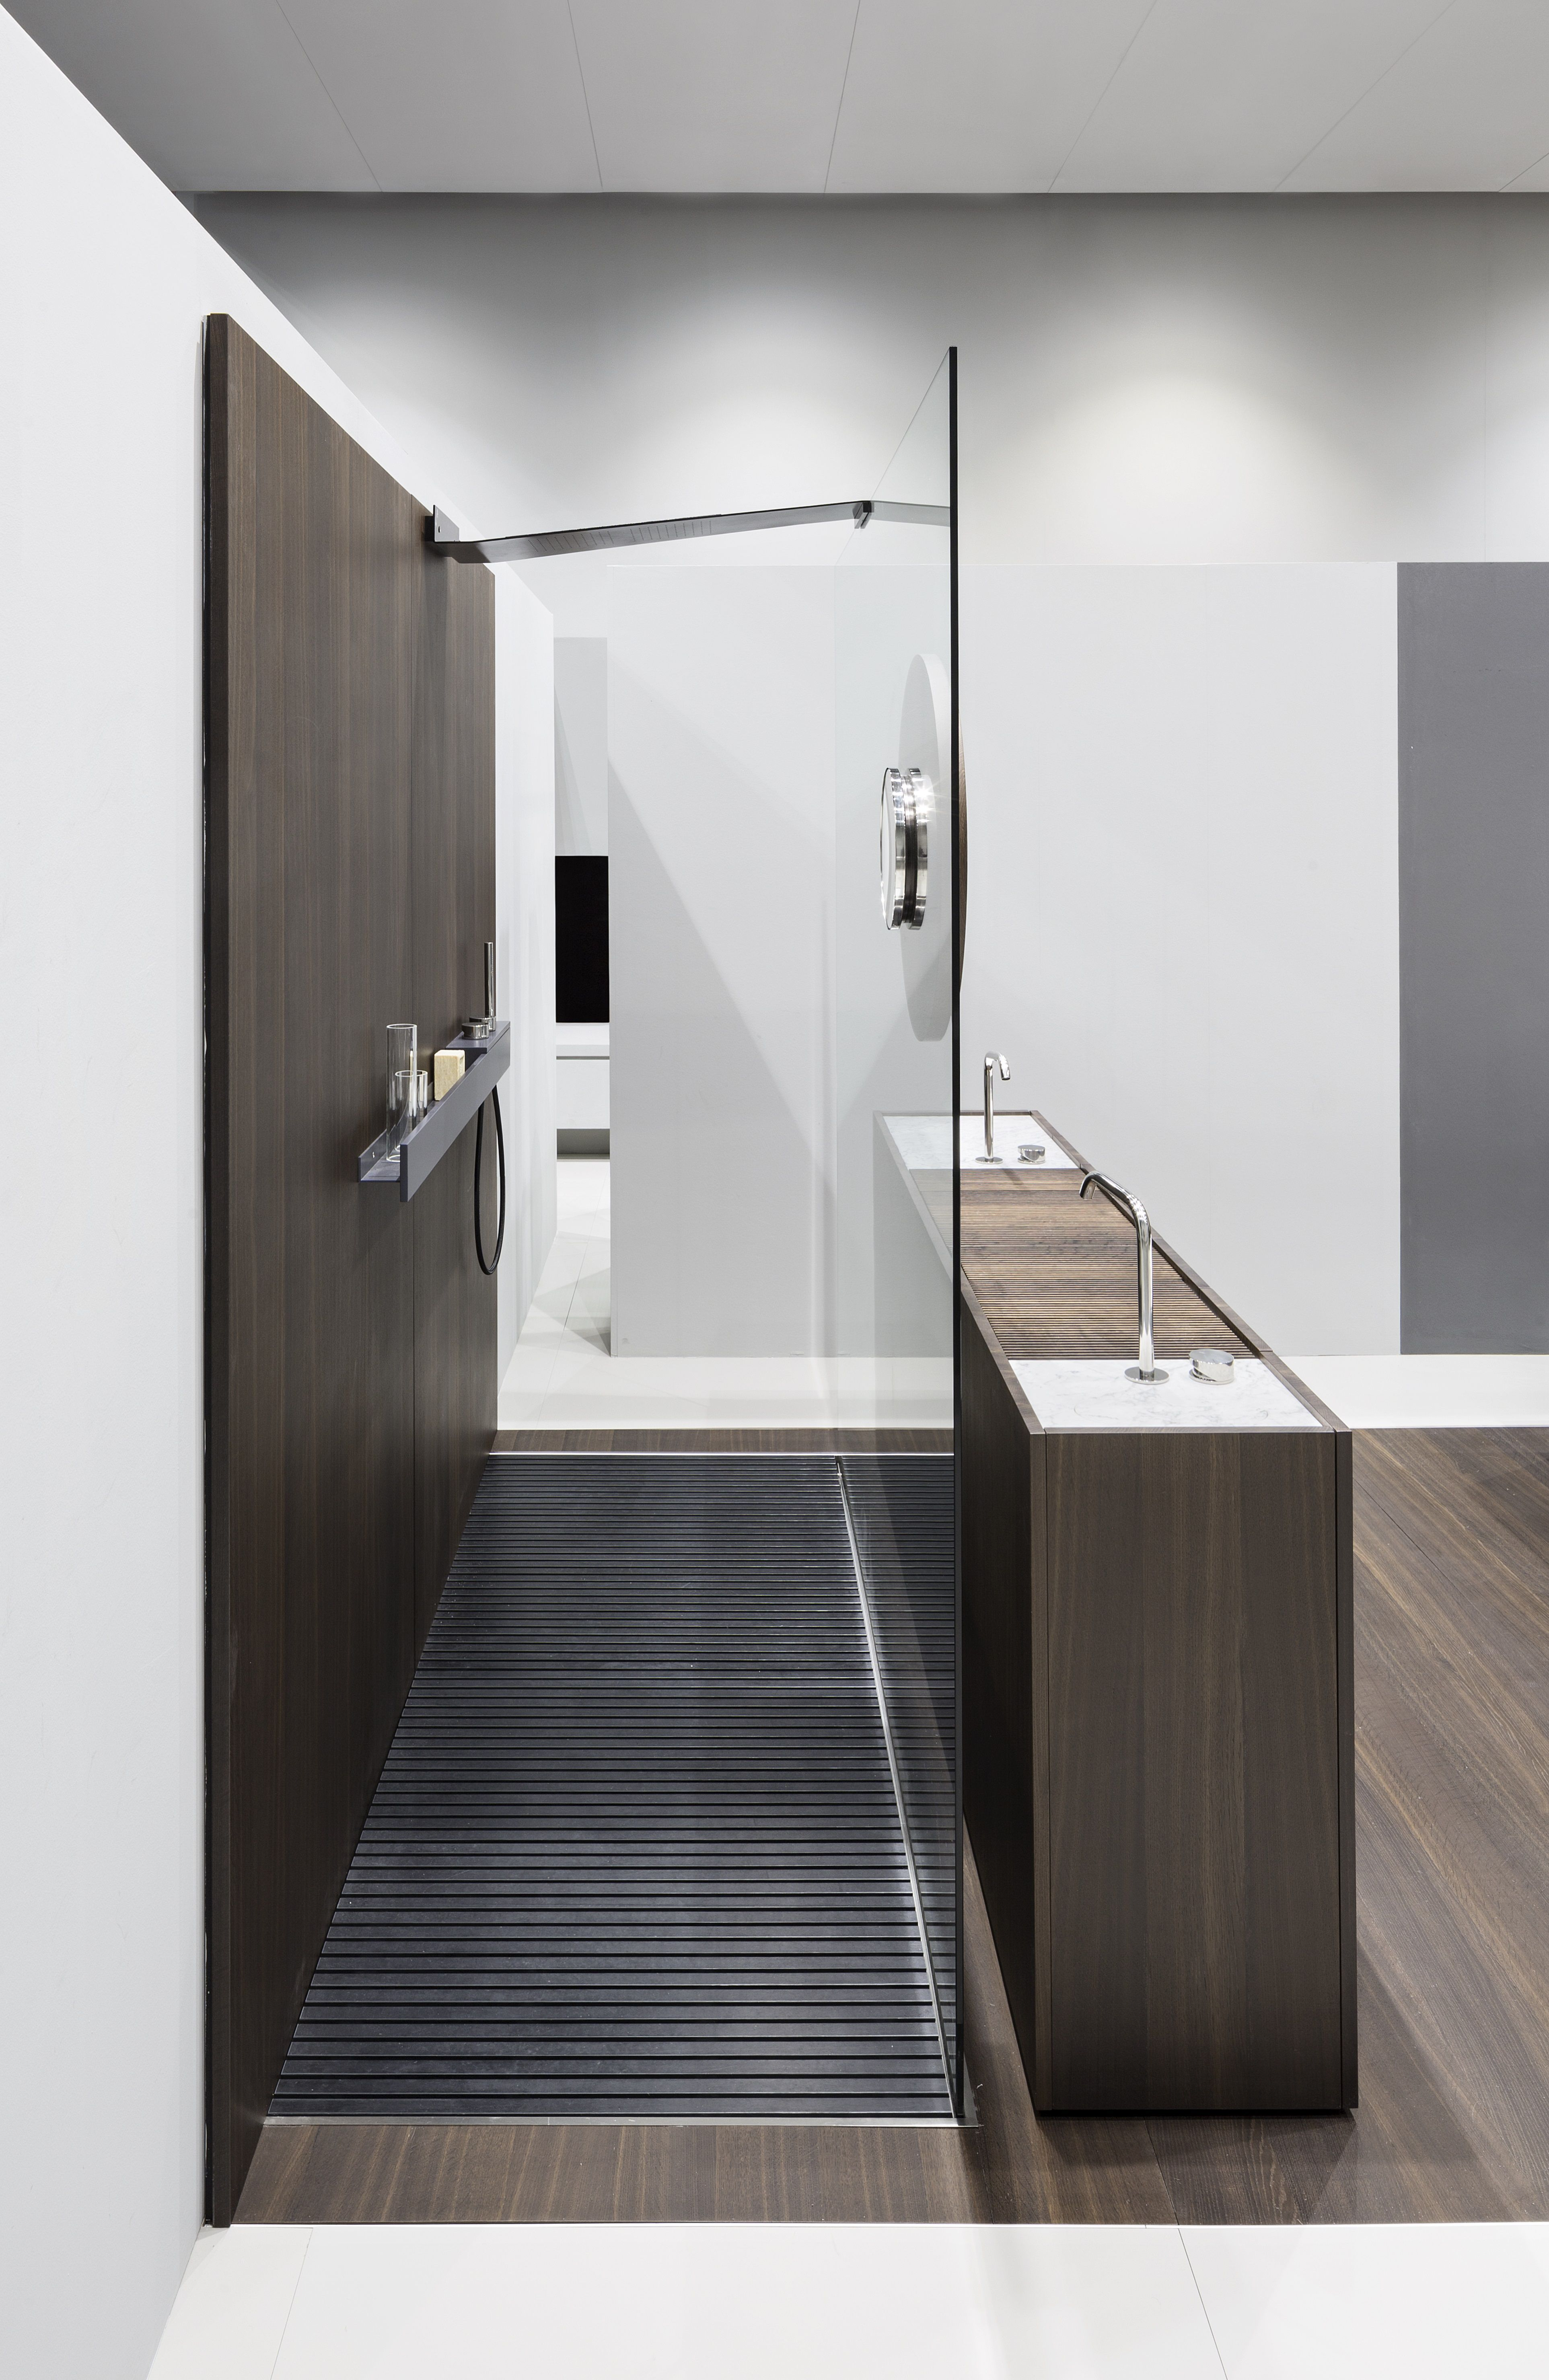 STEEL Is A Stainless Steel Shower Tray With Integrated Slatted Footboard  DECK In Paperstone®.